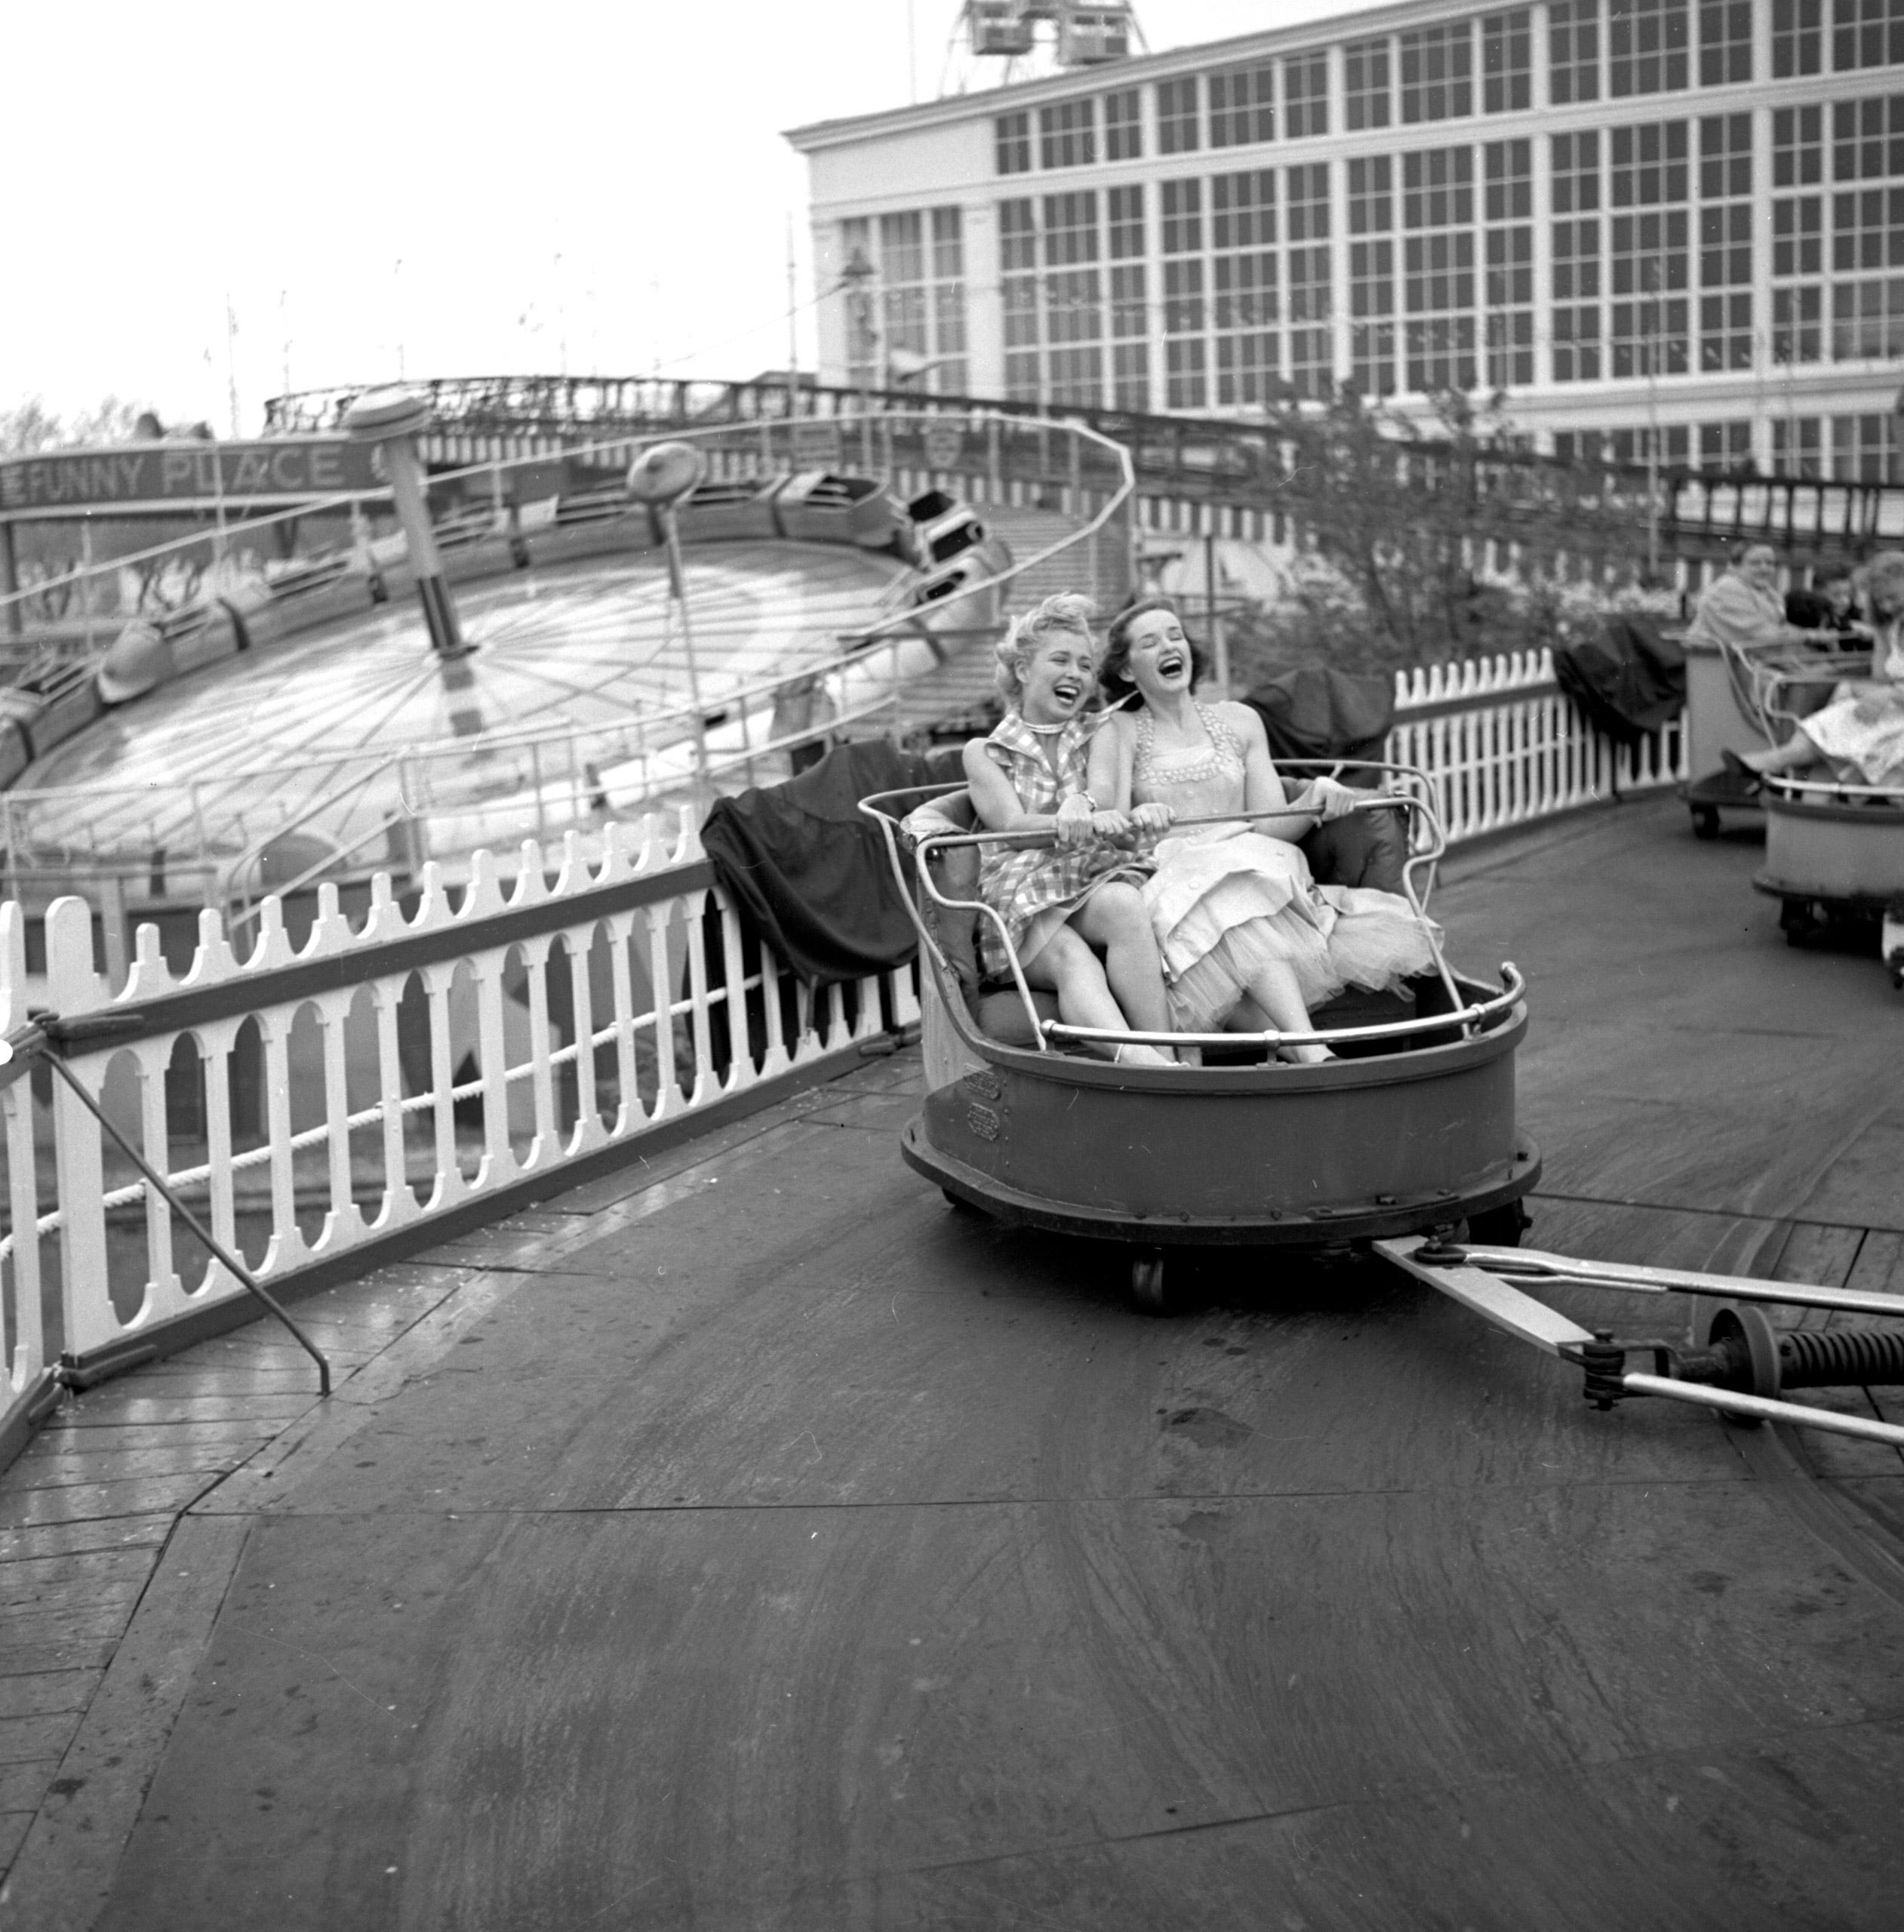 Models from the CBS gameshow,  The Big Payoff,  Cindy Robbins and Pat Conway ride The Whip designed and built by W.F. Mangels Company of Coney Island, at Steeplechase Park. Coney Island, Brooklyn, NY.